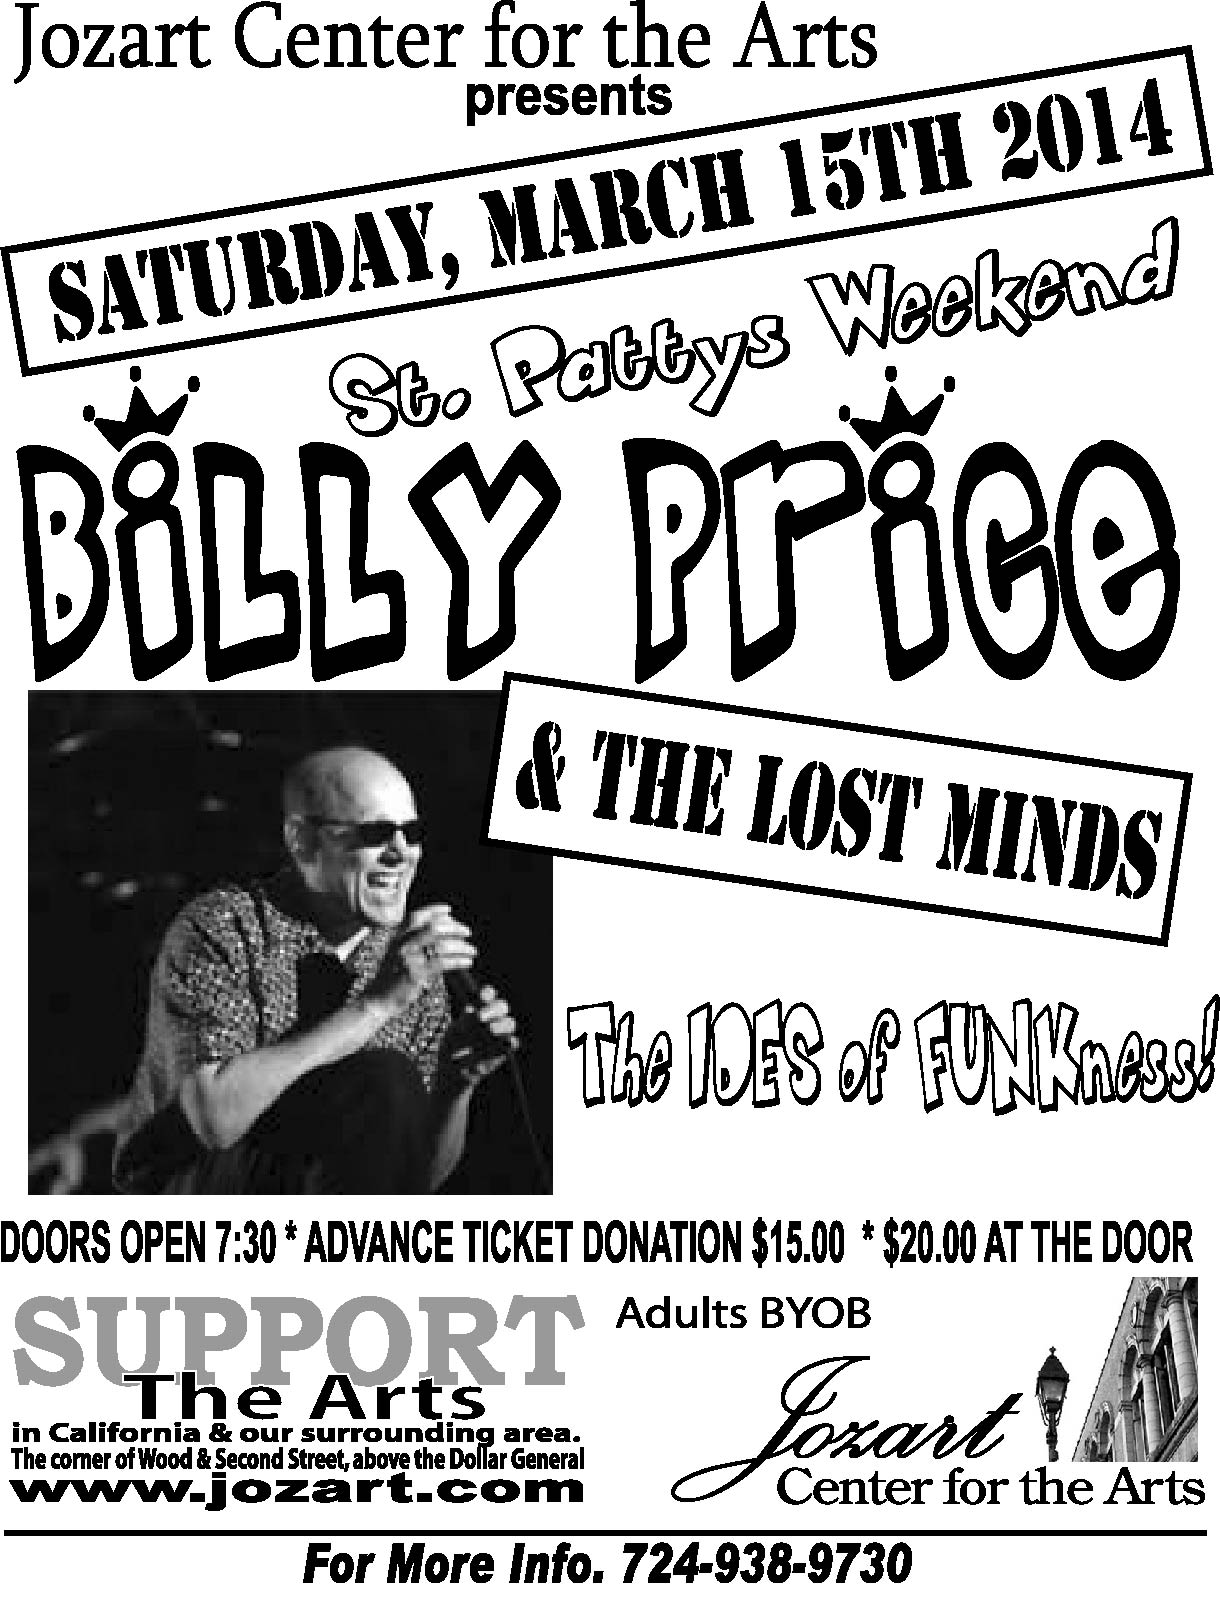 Billy Price poster outlines